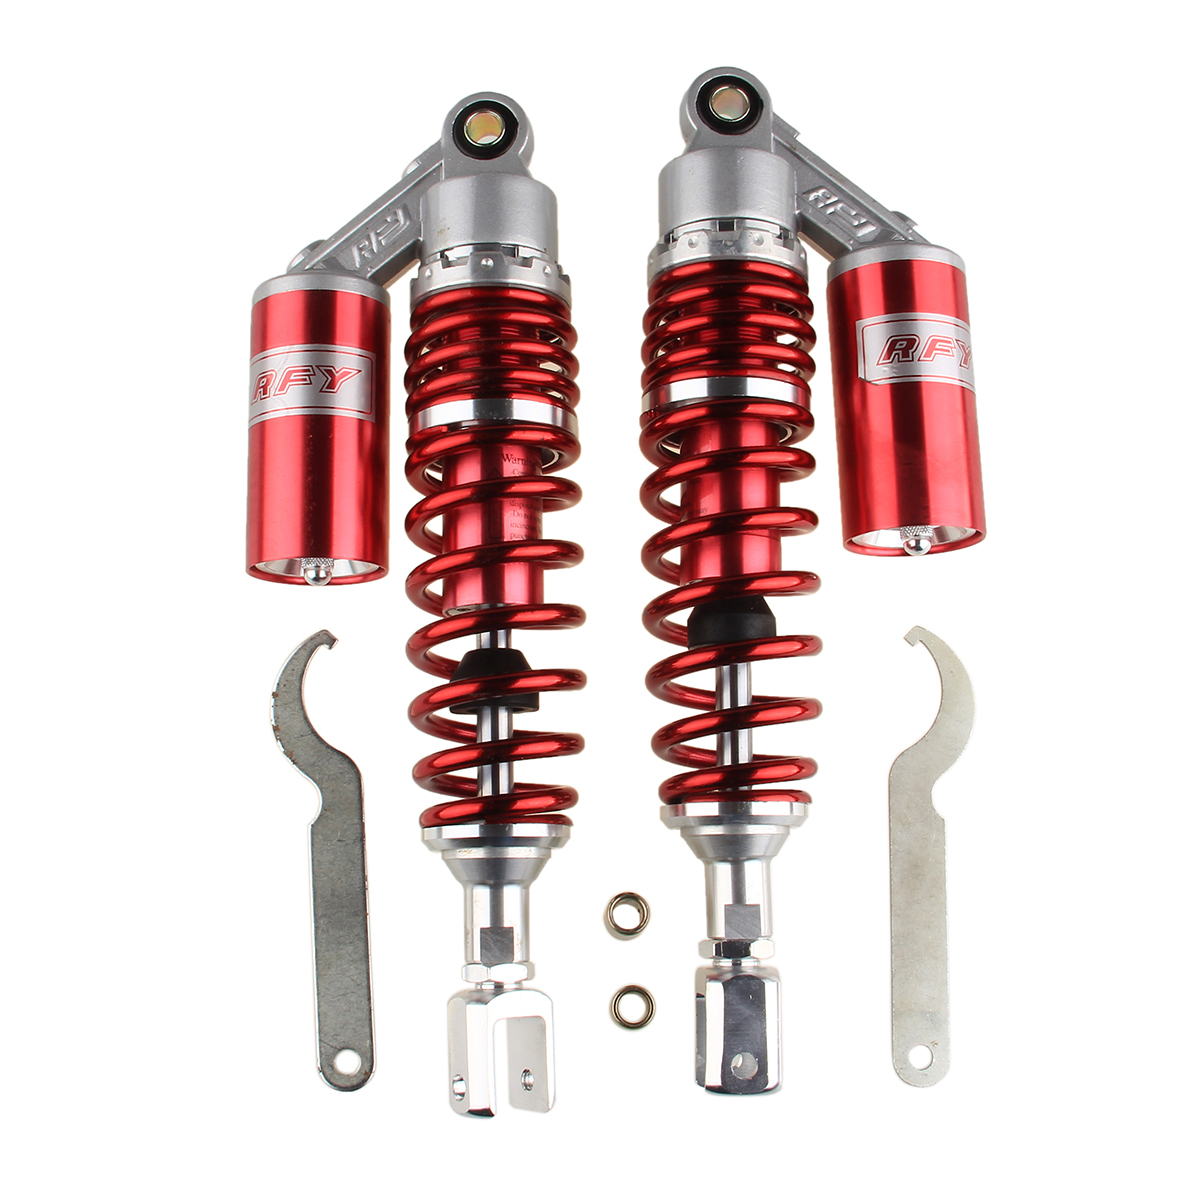 2x 13.5/'/' 340mm Rear Air Cylinder Shock Absorbers Suspension Spring Universal